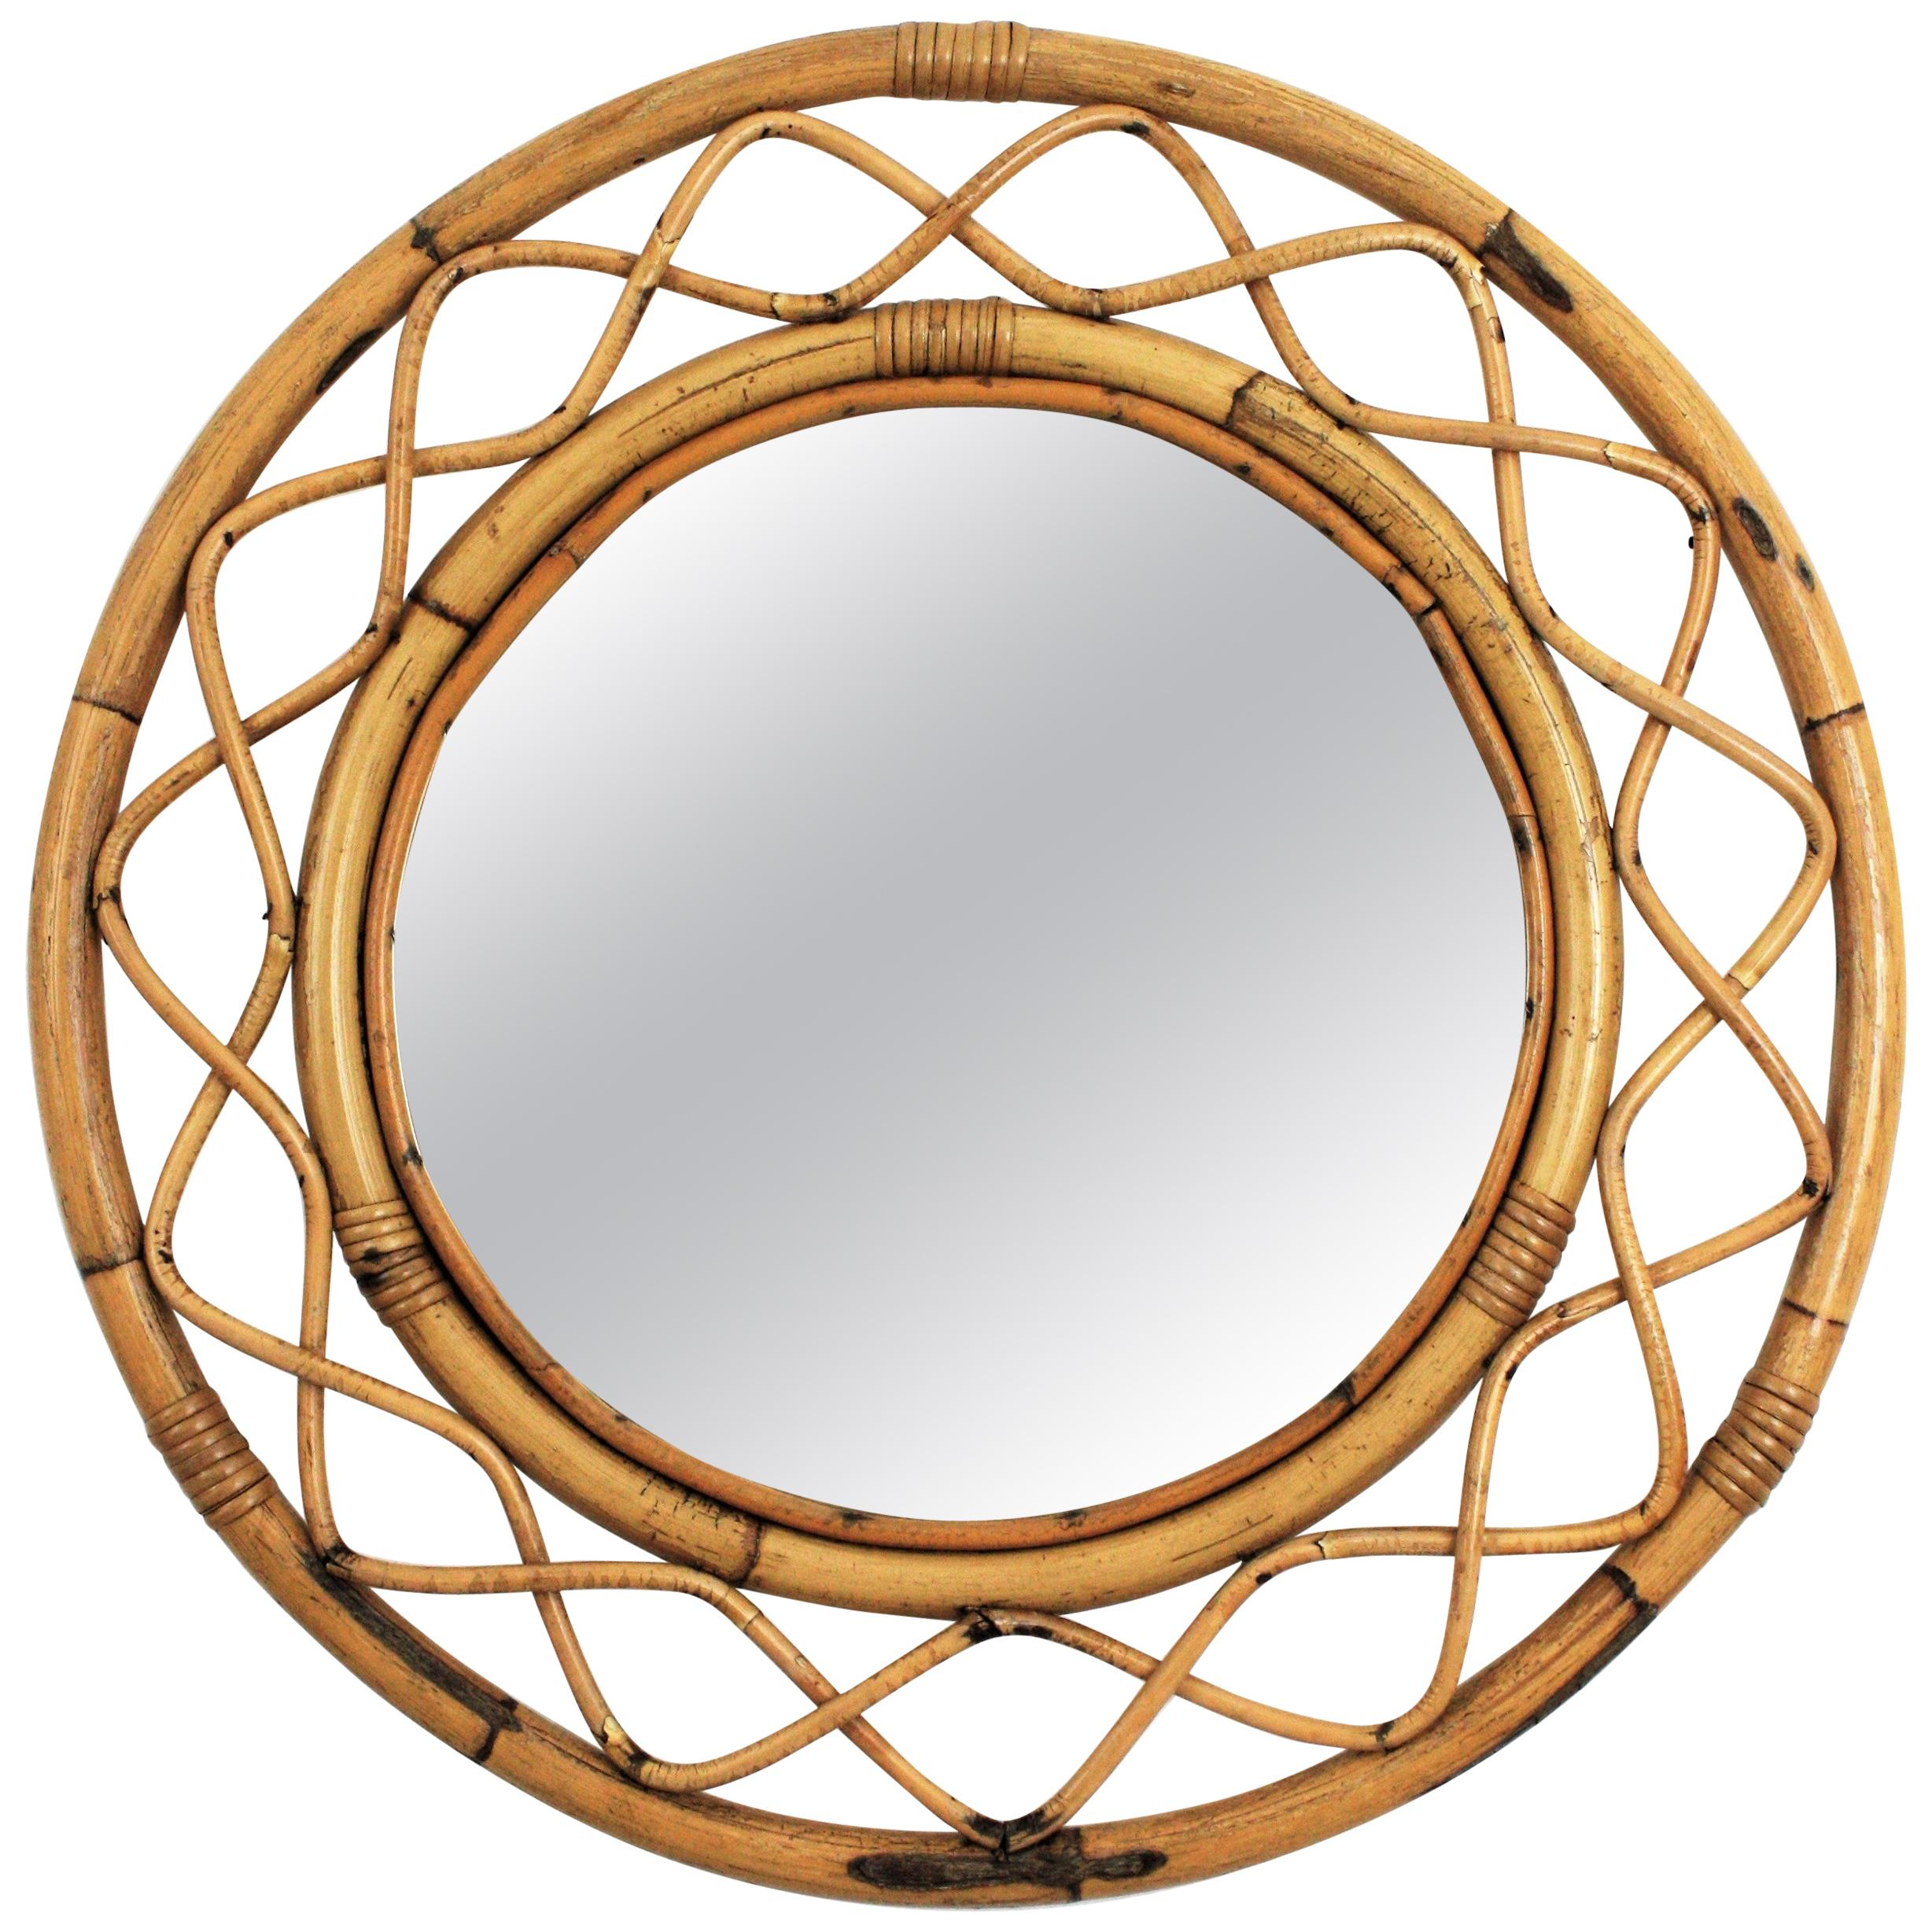 Franco Albini Style French Modern Bamboo and Rattan Round Wall Mirror, 1960s